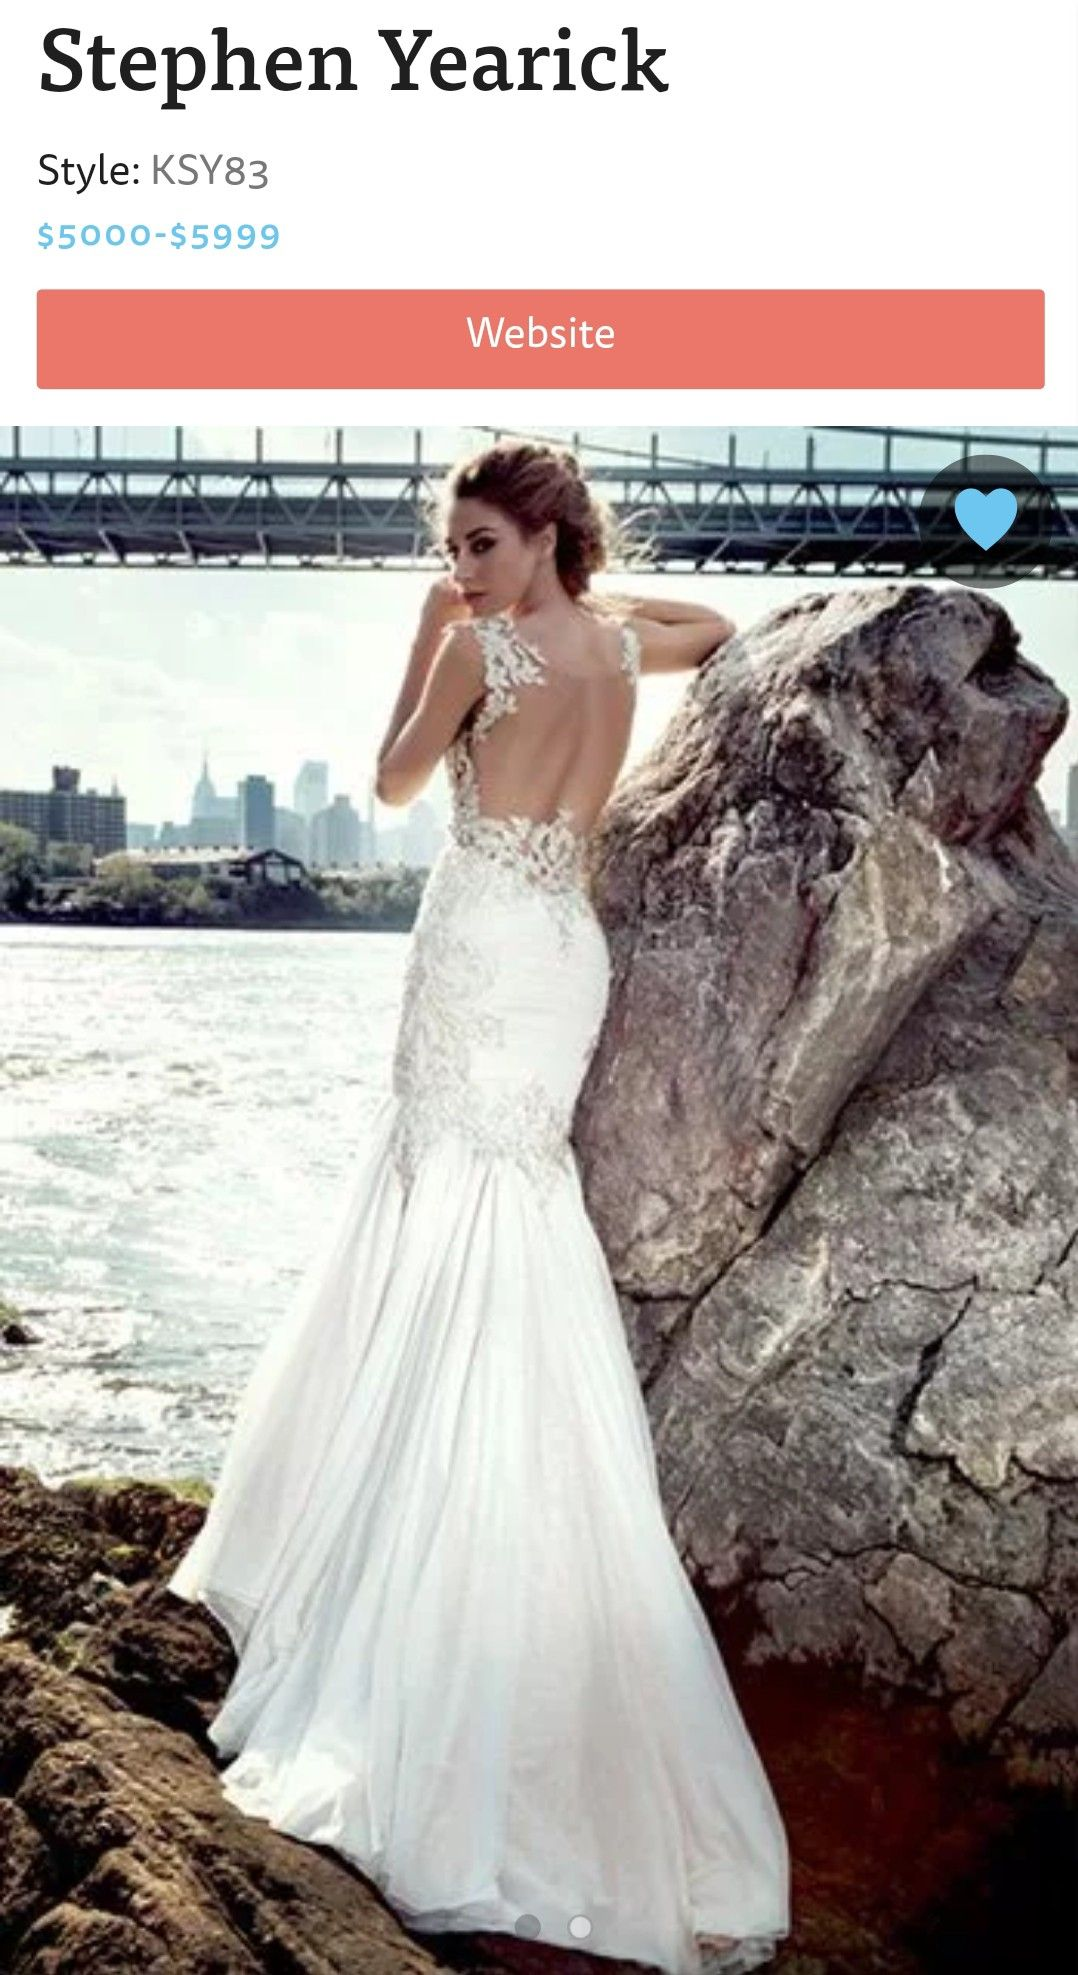 48dffd539fe Stephen Yearick Wedding Dresses